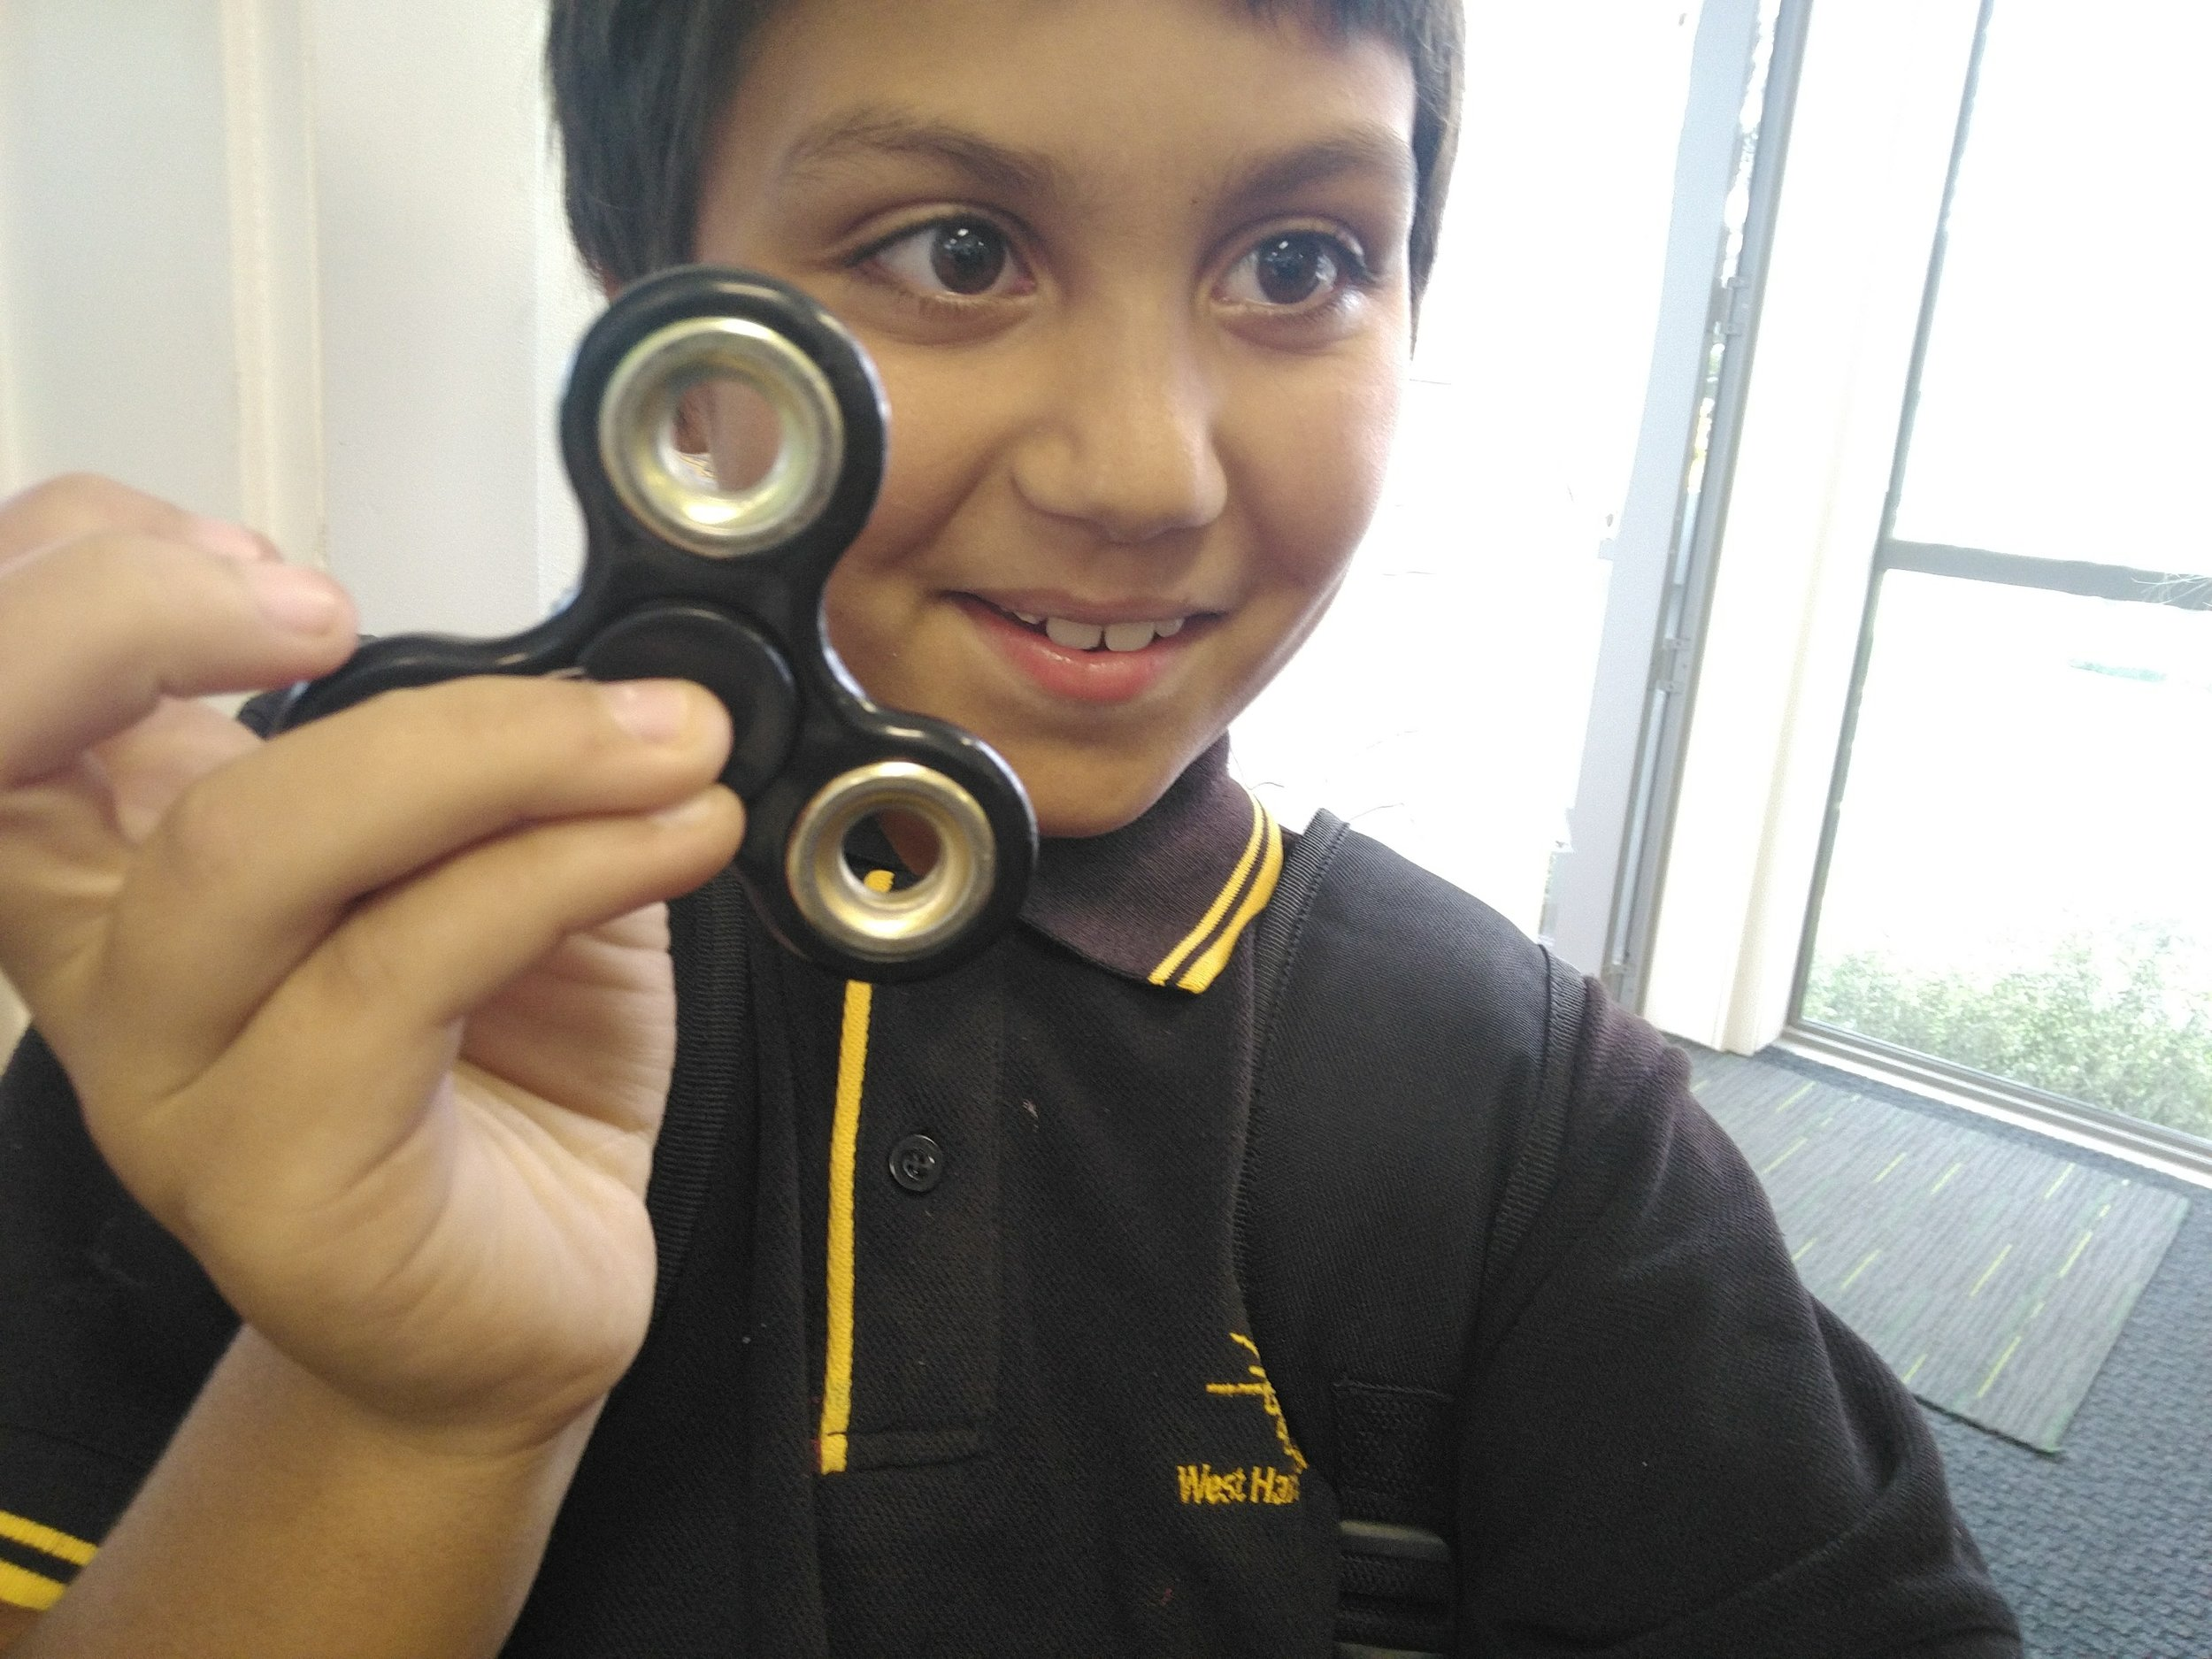 Another cool youth with a fidget spinner selfie!